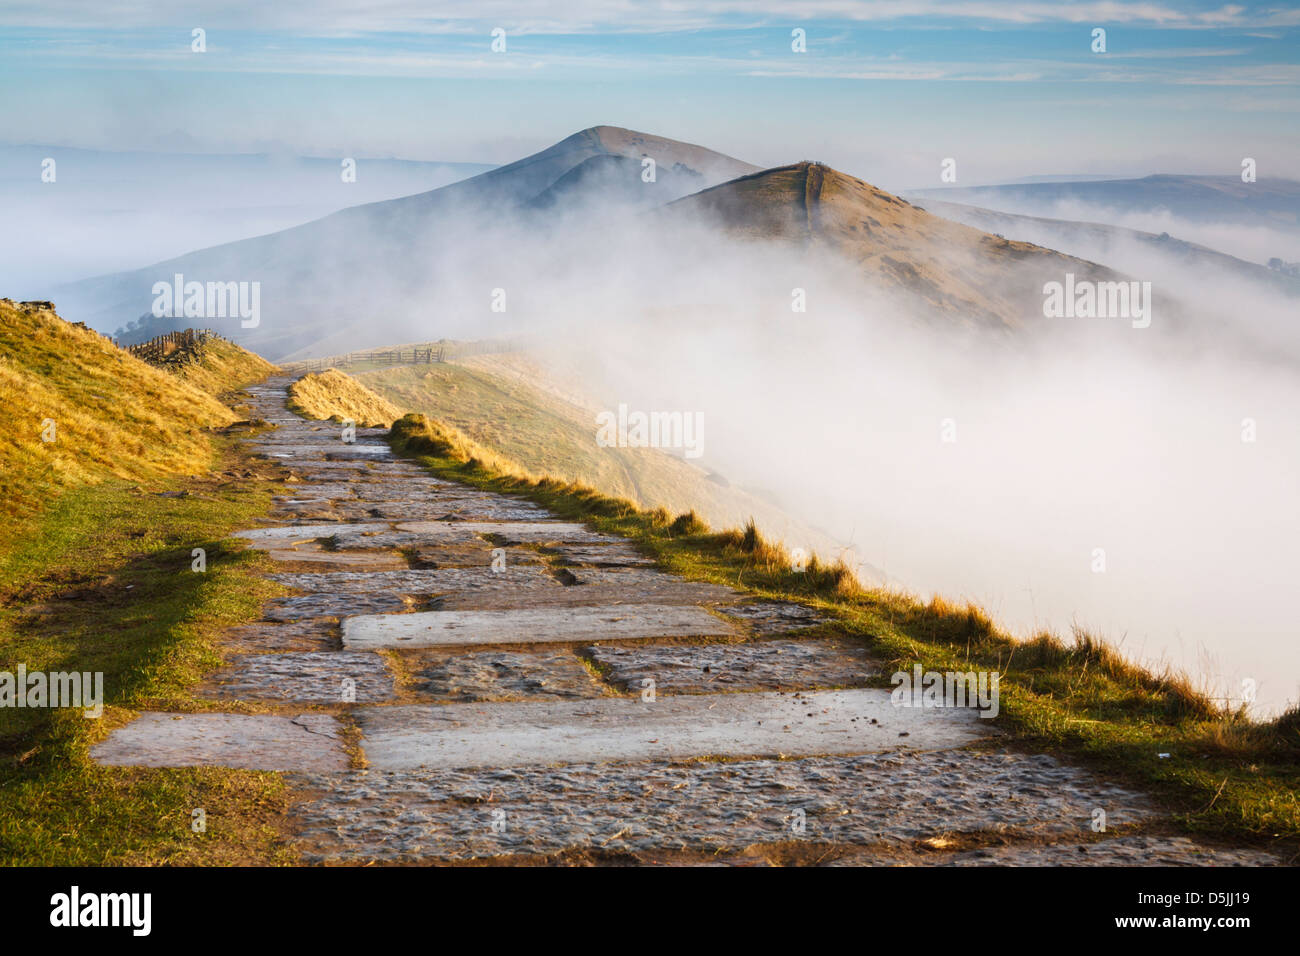 The great ridge near Mam Tor in the Peak District National Park - Stock Image